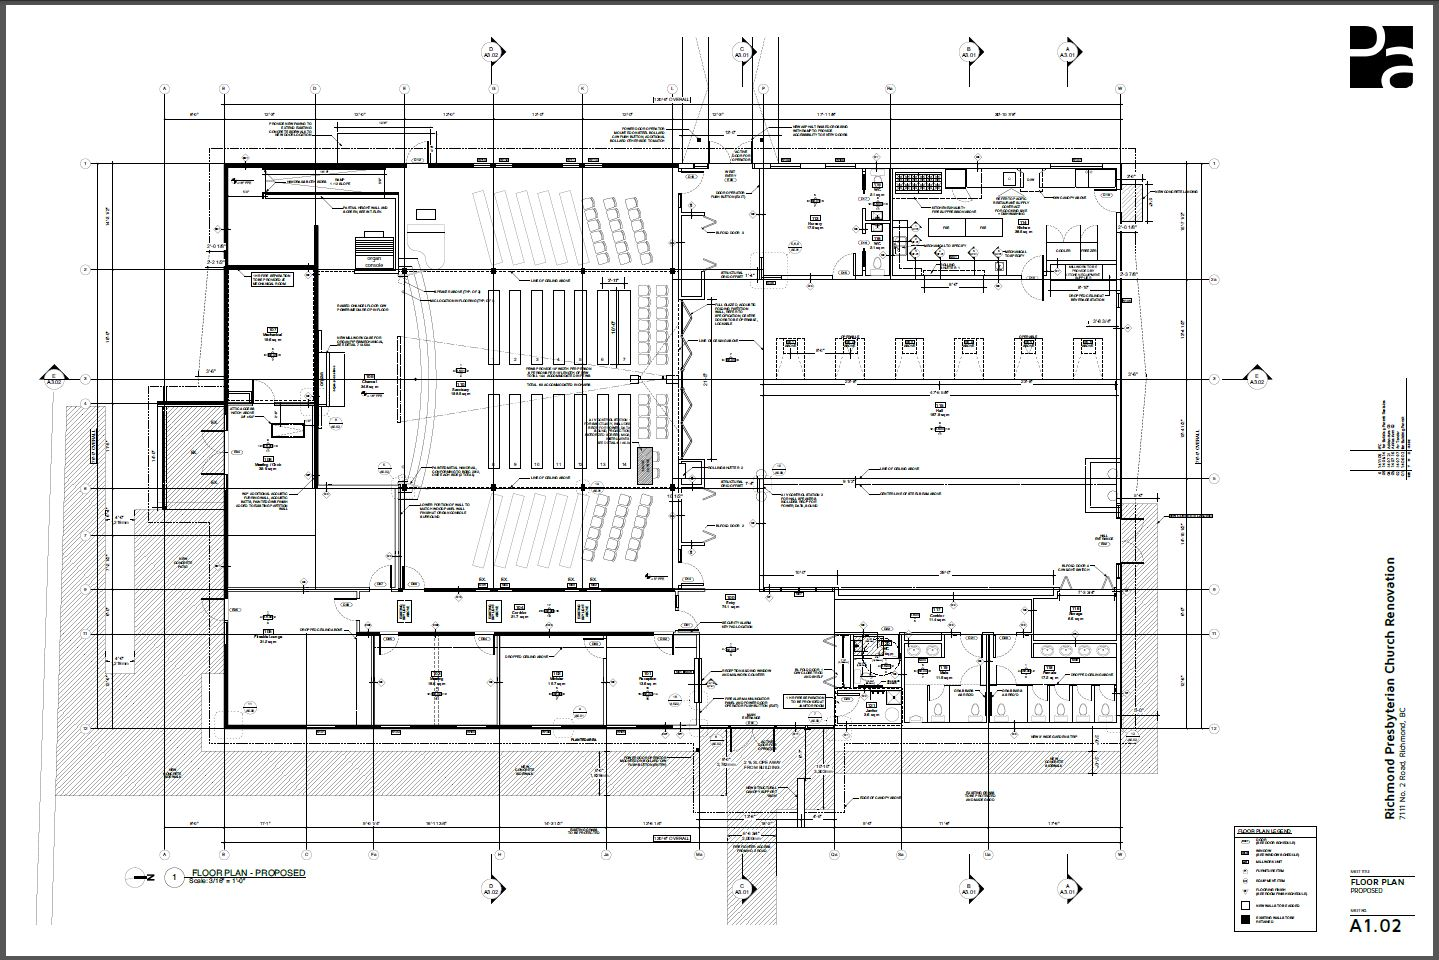 Rpc architectural floor plan richmond presbyterian church Architectural floor plans